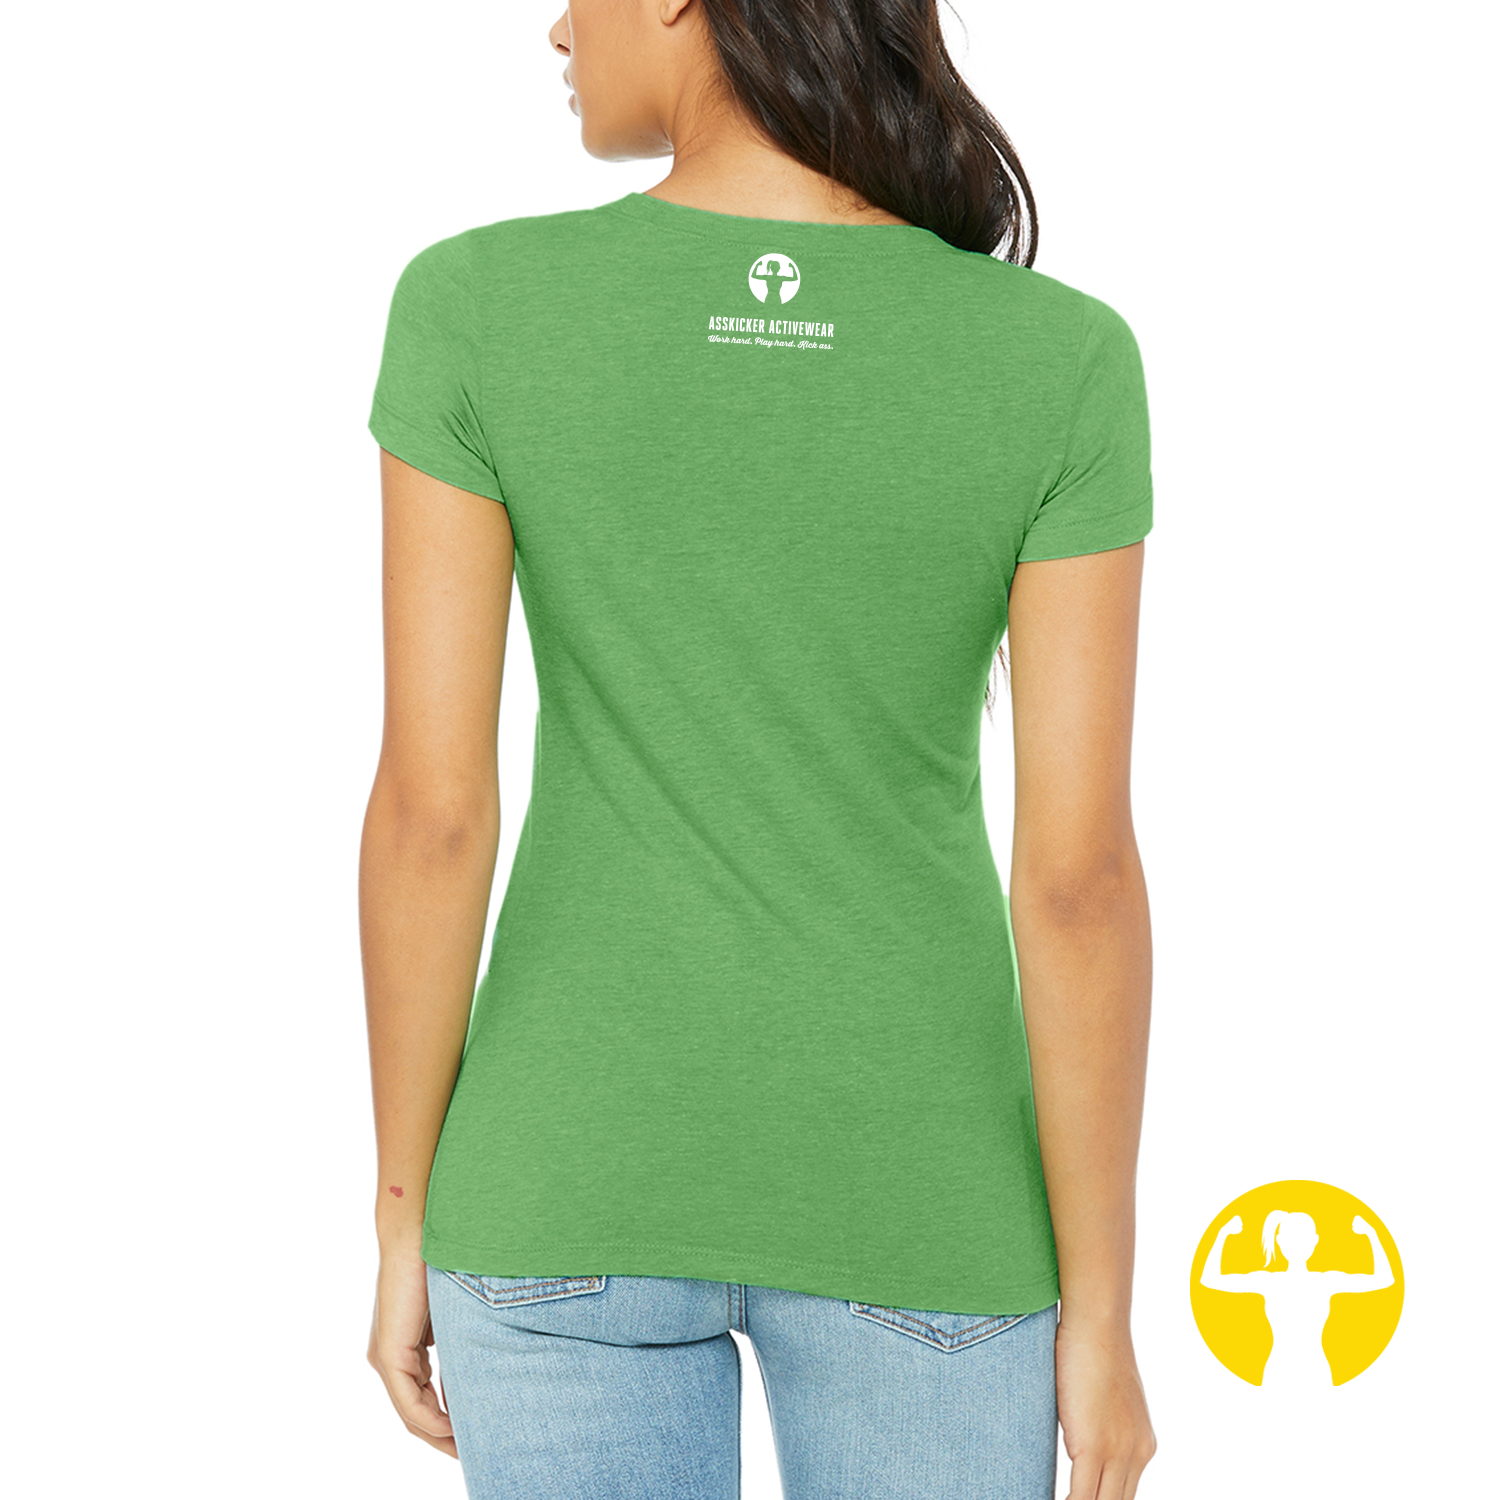 Green graphic tee that says strong as a mother